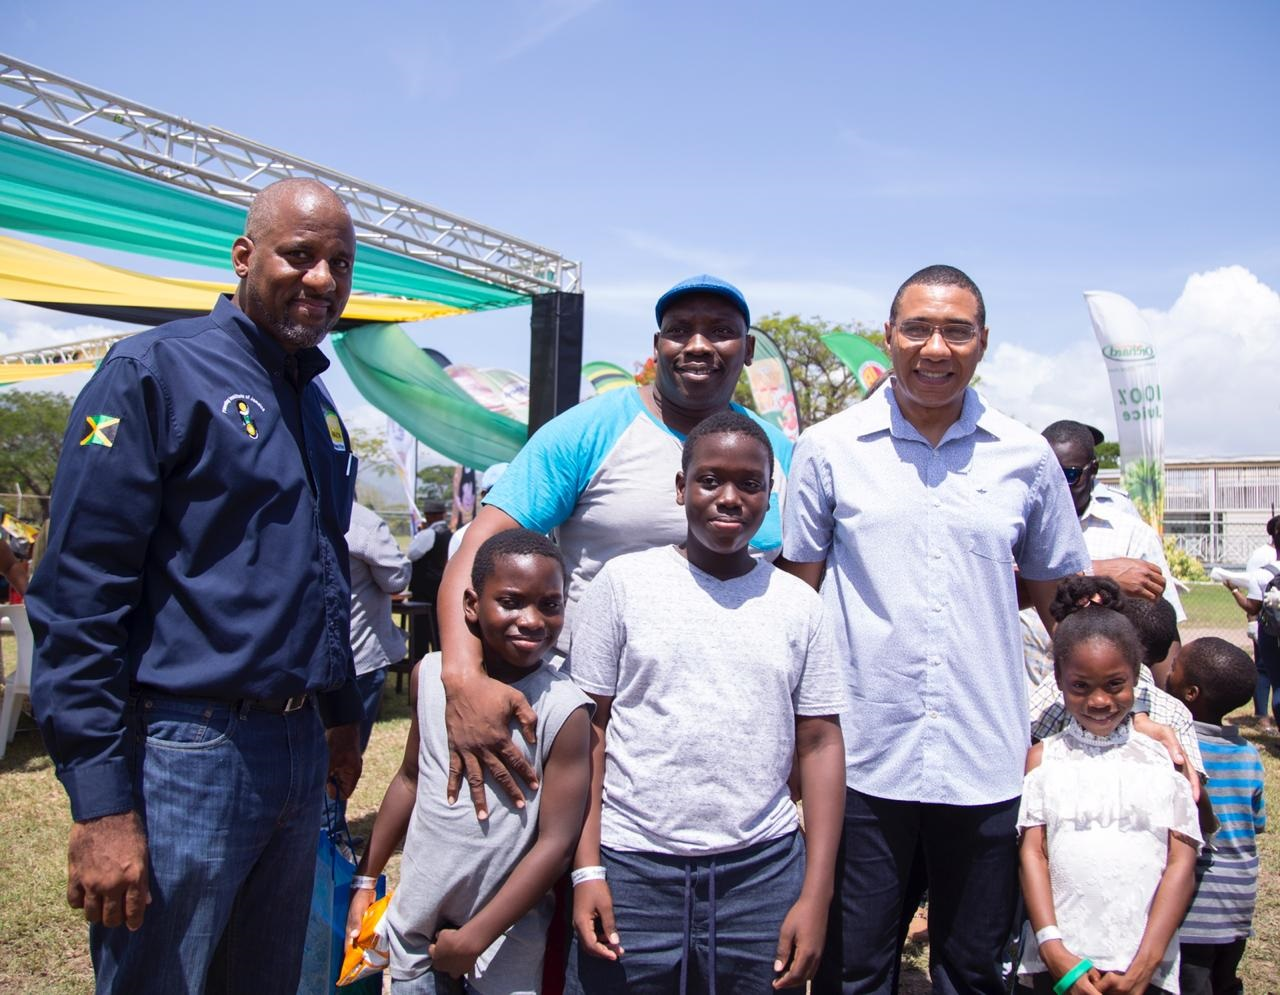 Prime Minister Andrew Holness (right), along with some fathers and their children, at a celebration of fatherhood at the Office of the Prime Minister (OPM) on Sunday afternoon. (Photos: Llewellyn Wynter)